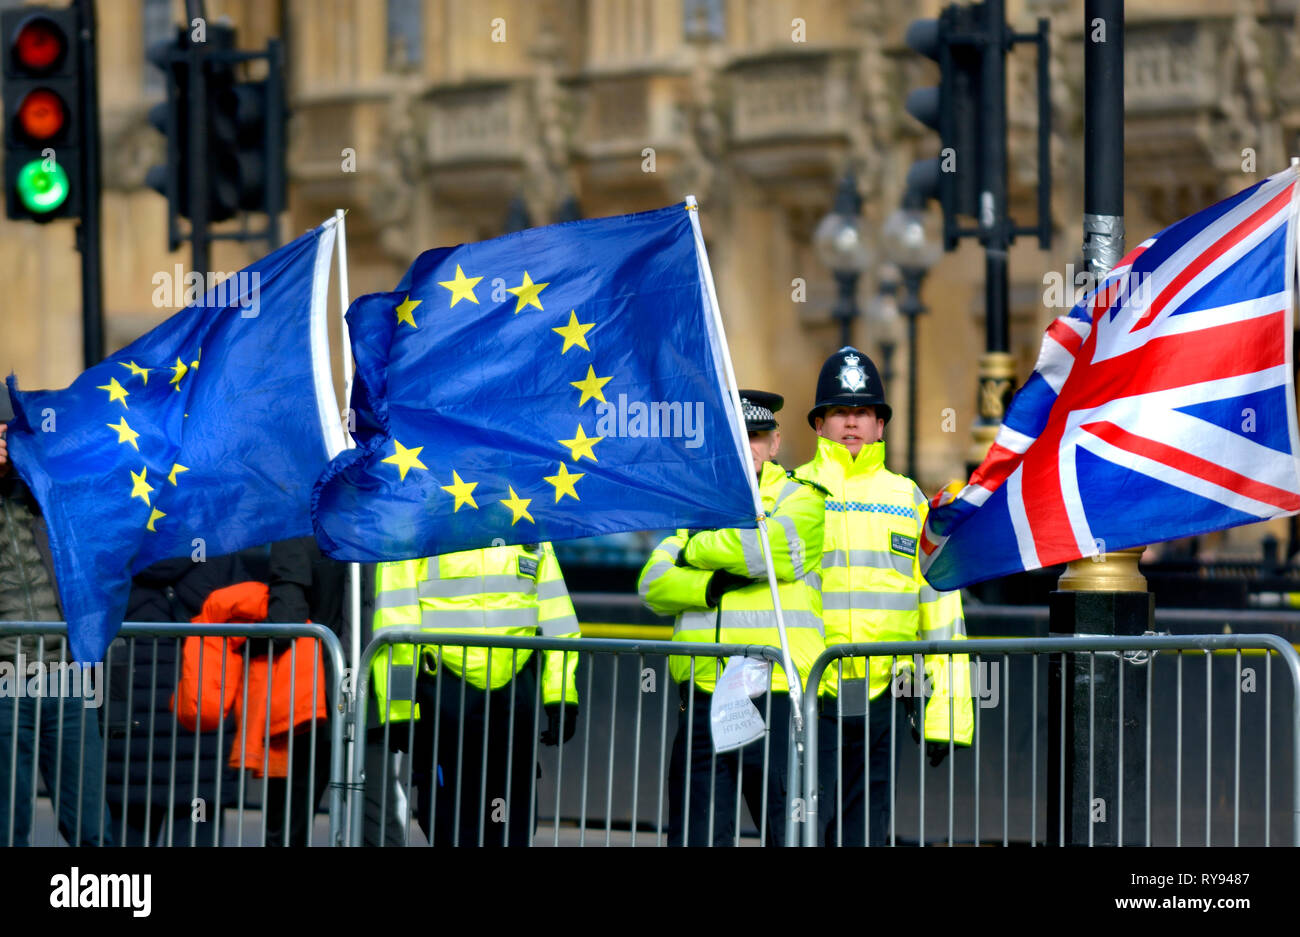 London, England, UK. Metropolitan police officers policing the daily anti-Brexit protest outside the Houses of Parliament - Stock Image